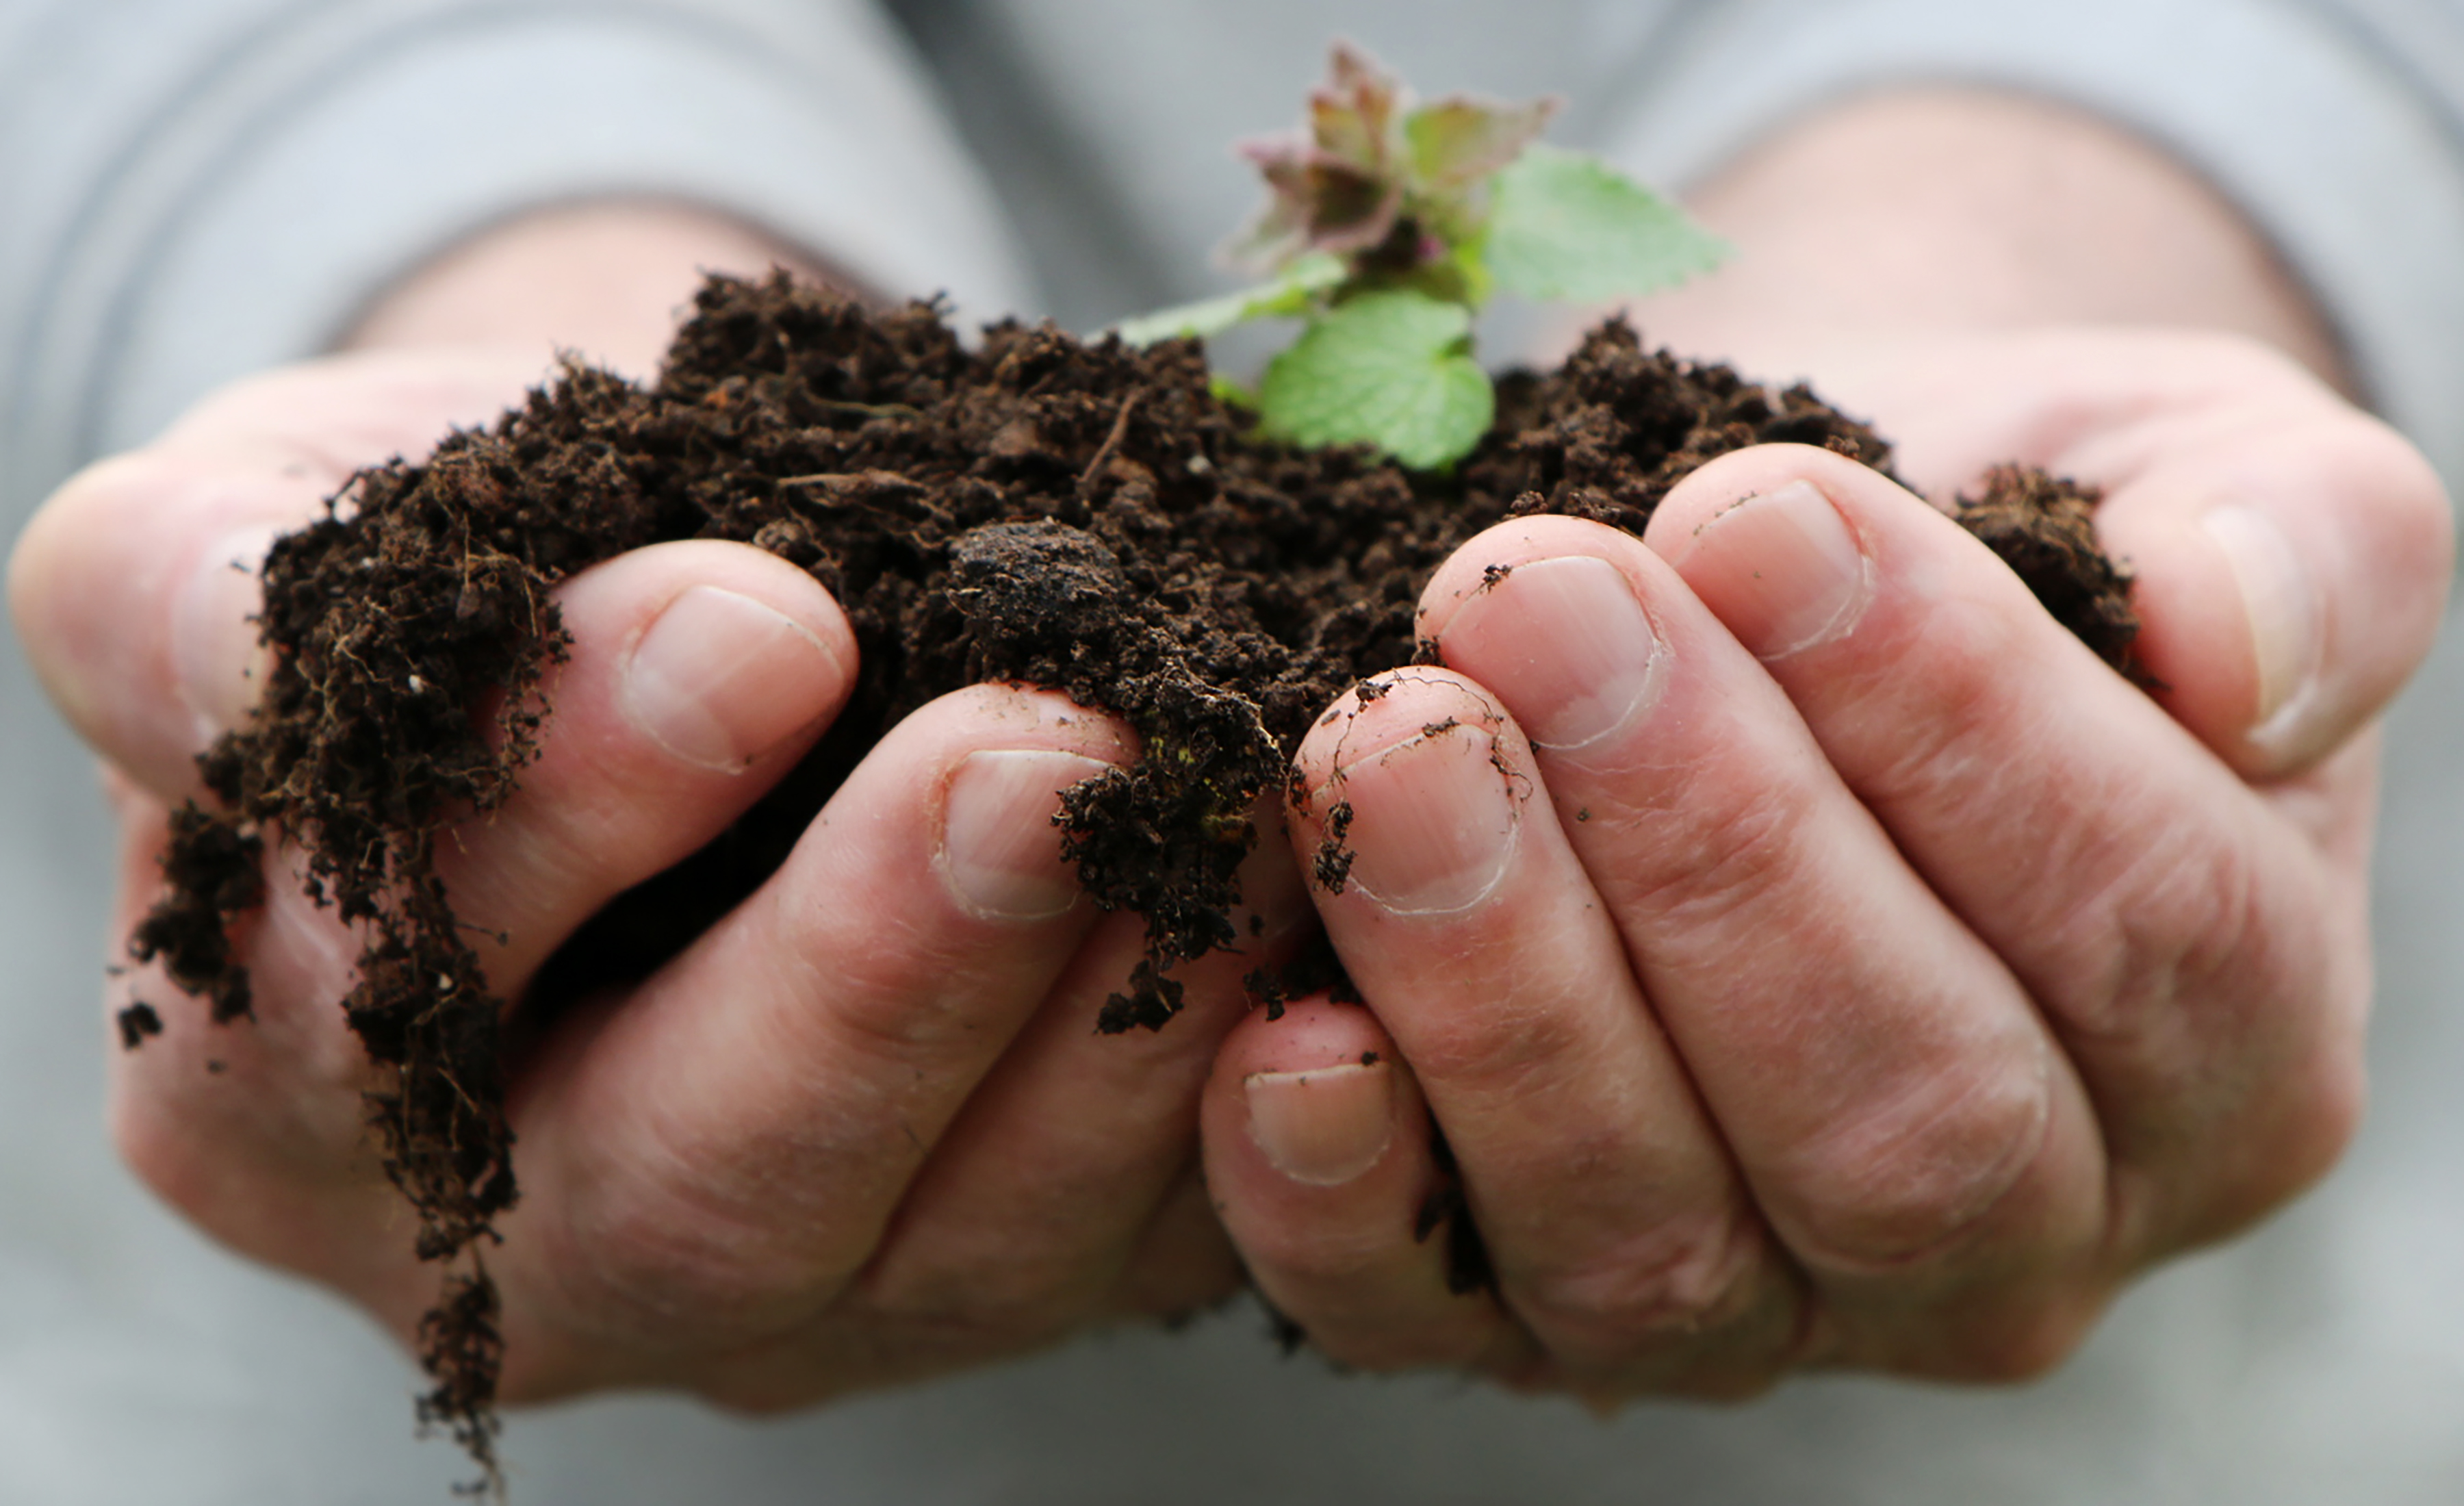 Hands holding a clump of healthy soil to transplant new growth as a part of company sustainability practices.